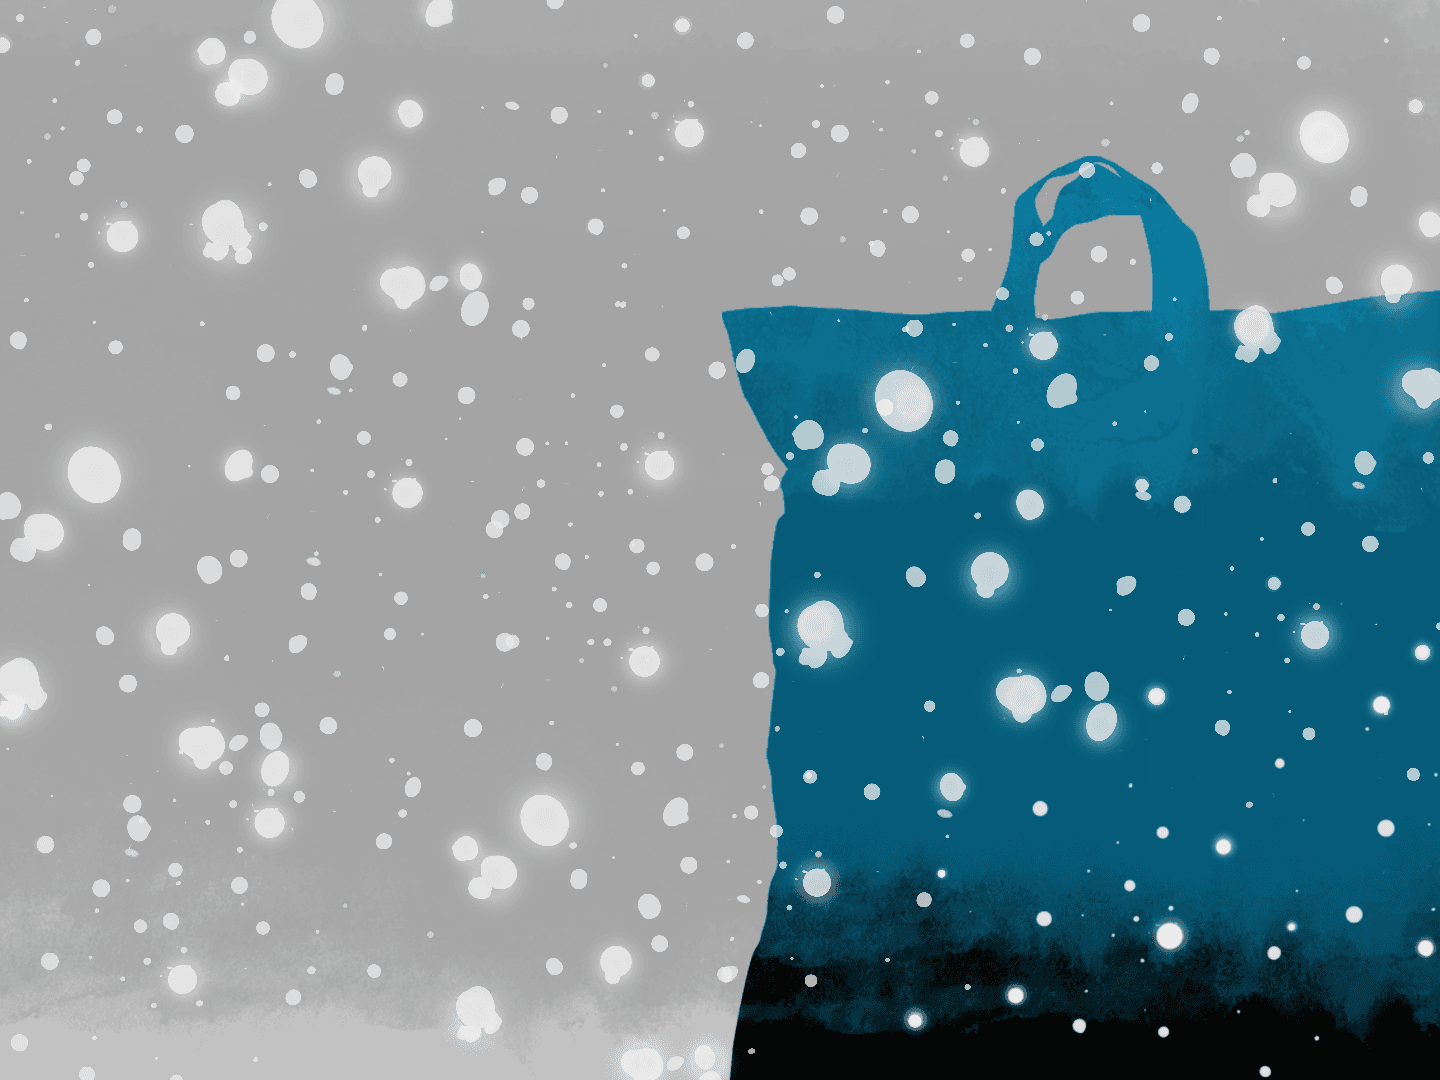 weather affect shopping habits bag snow